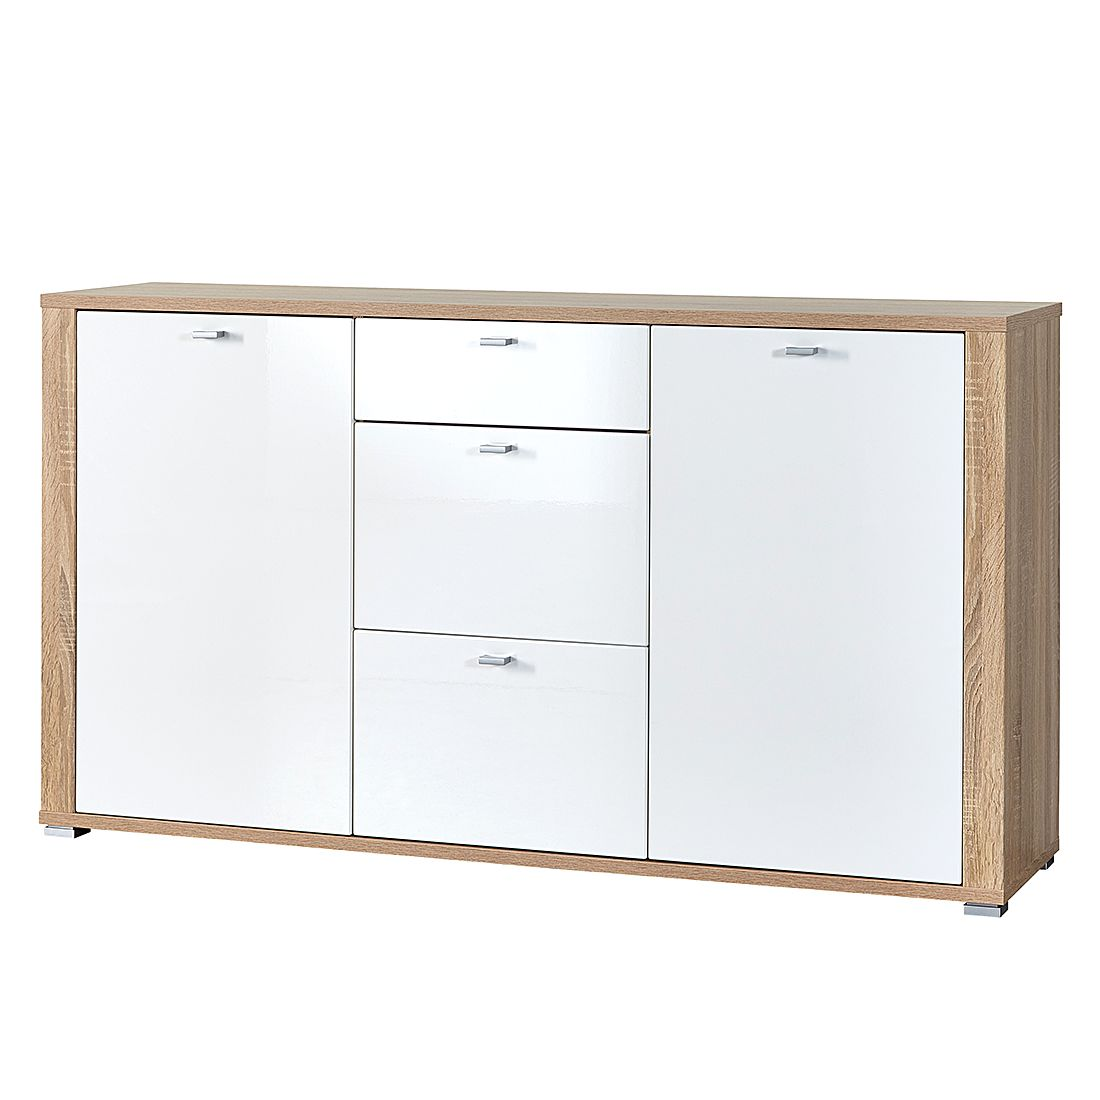 d co sideboard ikea weiss hochglanz 26 rouen sideboard rouen. Black Bedroom Furniture Sets. Home Design Ideas